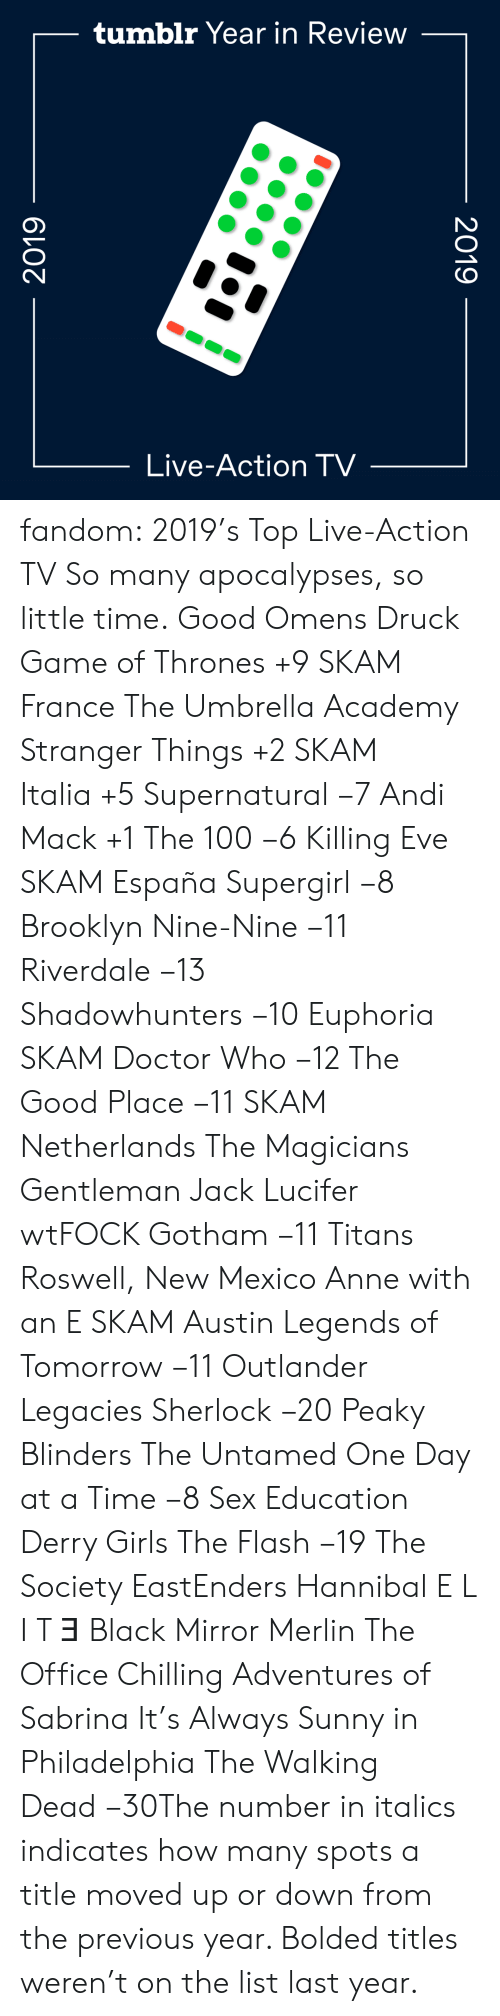 Always Sunny: tumblr Year in Review  Live-Action TV-  2019  2019 fandom:  2019's Top Live-Action TV  So many apocalypses, so little time.  Good Omens  Druck  Game of Thrones +9  SKAM France  The Umbrella Academy  Stranger Things +2  SKAM Italia +5  Supernatural −7  Andi Mack +1  The 100 −6  Killing Eve   SKAM España  Supergirl −8  Brooklyn Nine-Nine −11  Riverdale −13  Shadowhunters −10  Euphoria  SKAM  Doctor Who −12  The Good Place −11  SKAM Netherlands  The Magicians  Gentleman Jack  Lucifer  wtFOCK  Gotham −11  Titans  Roswell, New Mexico  Anne with an E  SKAM Austin  Legends of Tomorrow −11  Outlander  Legacies  Sherlock −20  Peaky Blinders  The Untamed  One Day at a Time −8  Sex Education  Derry Girls  The Flash −19  The Society  EastEnders  Hannibal  E L I T Ǝ  Black Mirror  Merlin  The Office  Chilling Adventures of Sabrina  It's Always Sunny in Philadelphia The Walking Dead −30The number in italics indicates how many spots a title moved up or down from the previous year. Bolded titles weren't on the list last year.